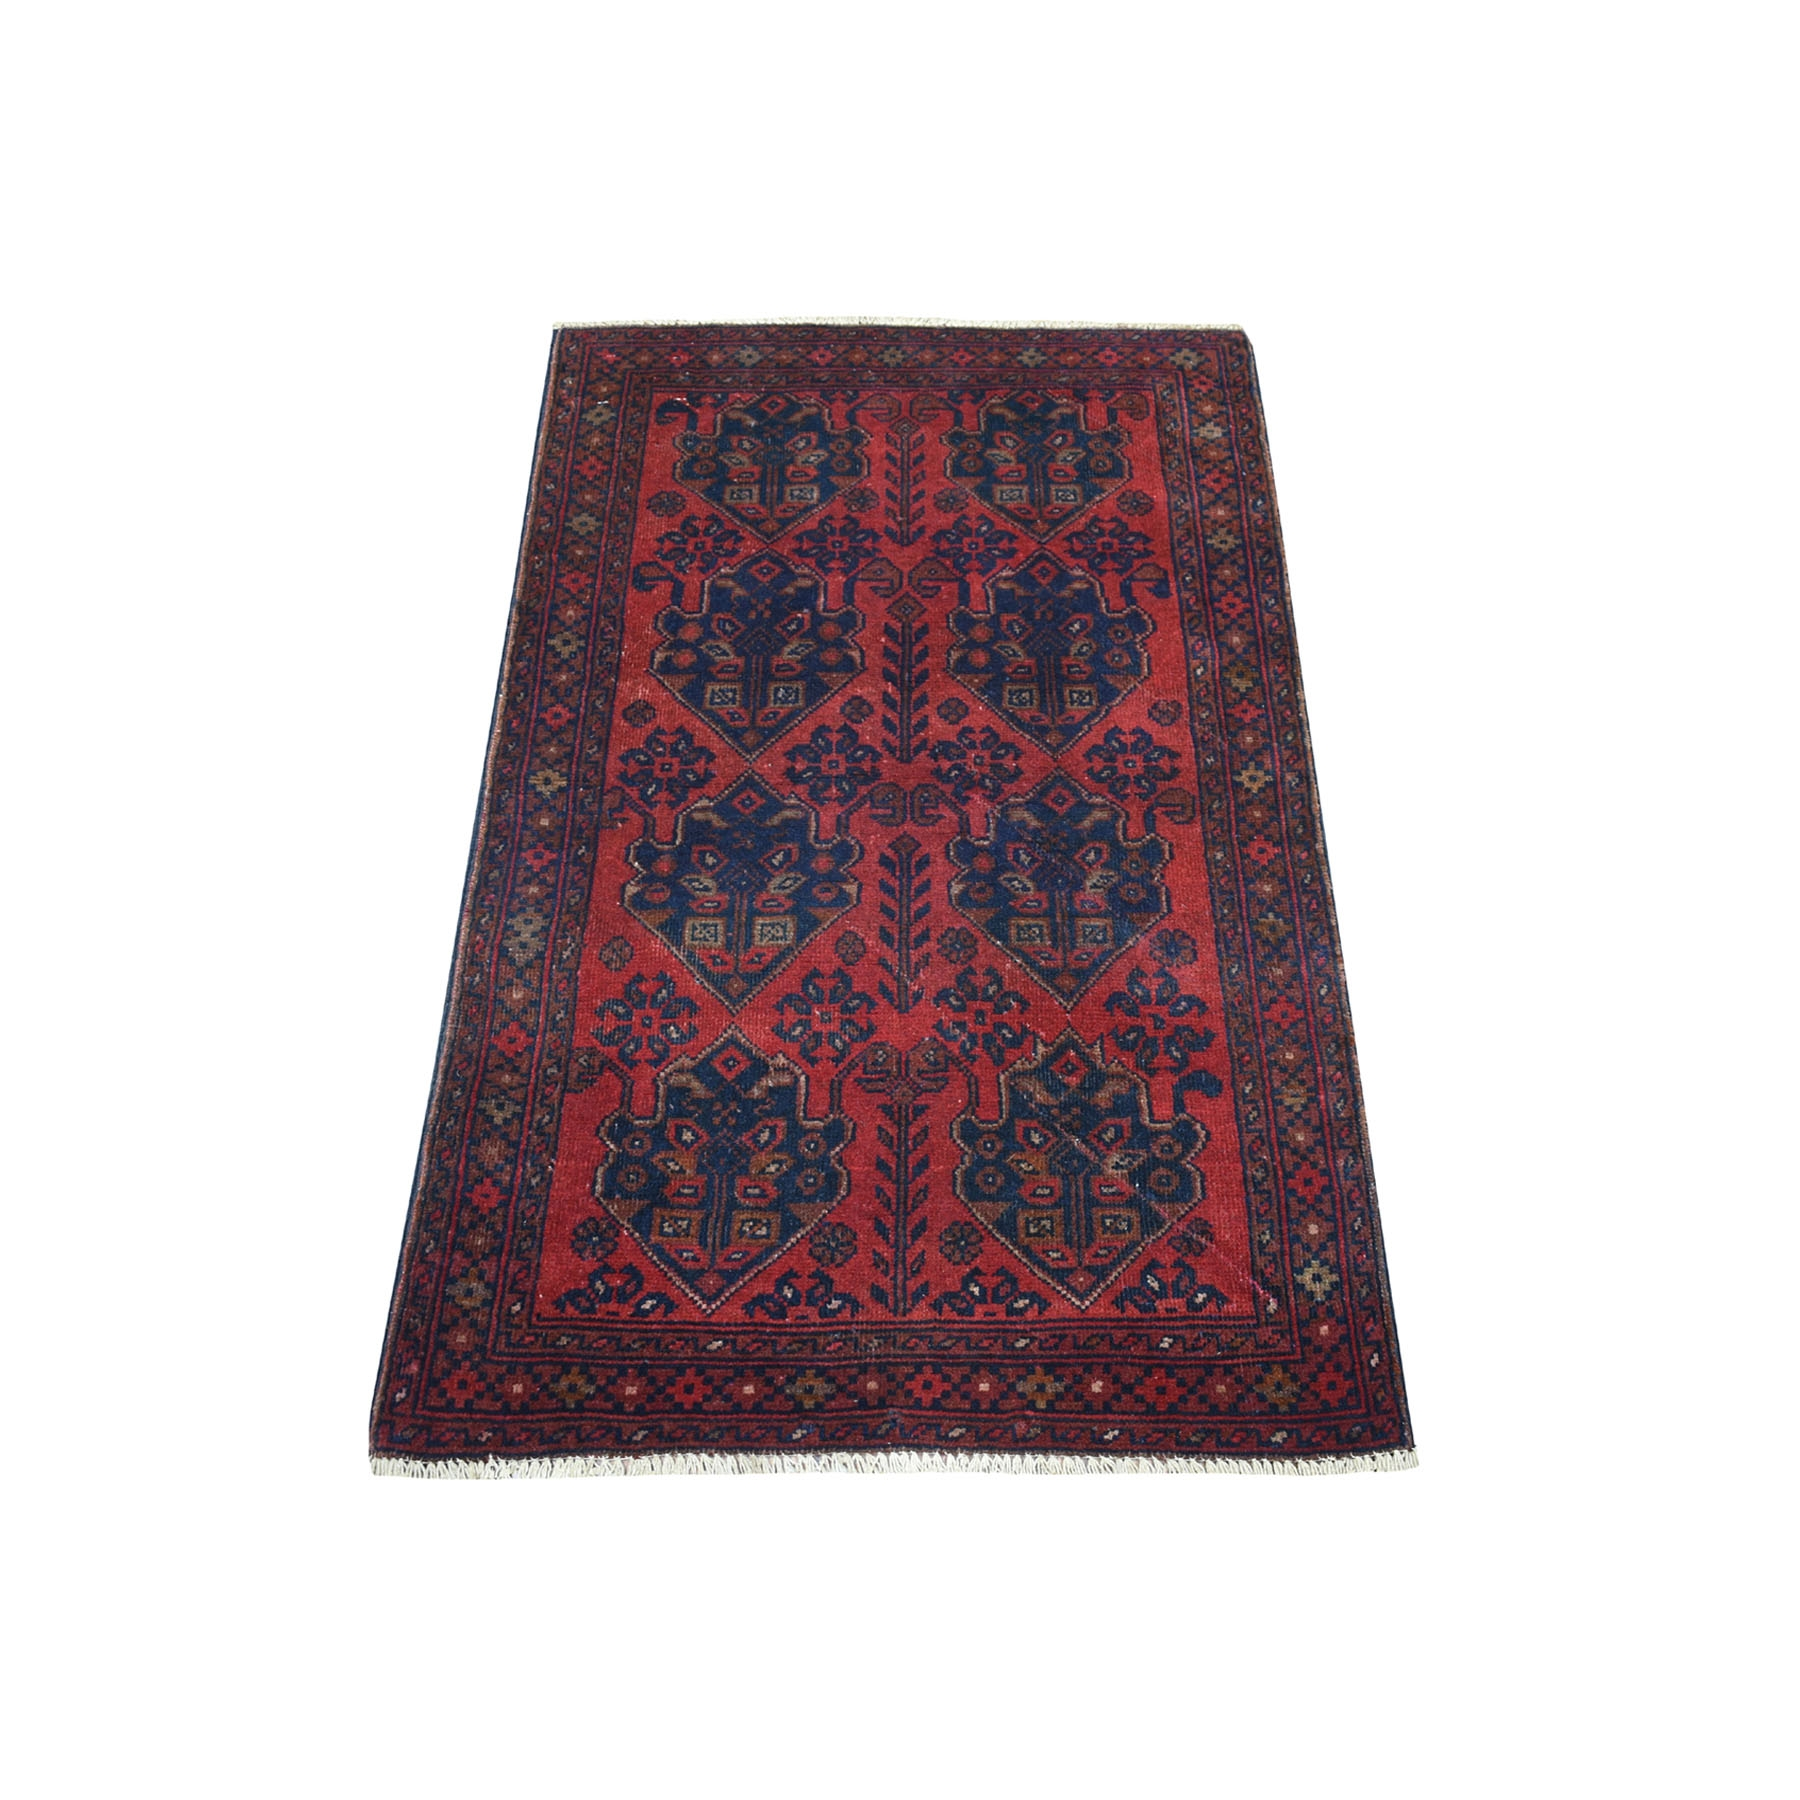 "2'5""X4' Deep And Saturated Red Geometric Design Afghan Andkhoy Pure Wool Hand-Knotted Oriental Rug moaec90a"